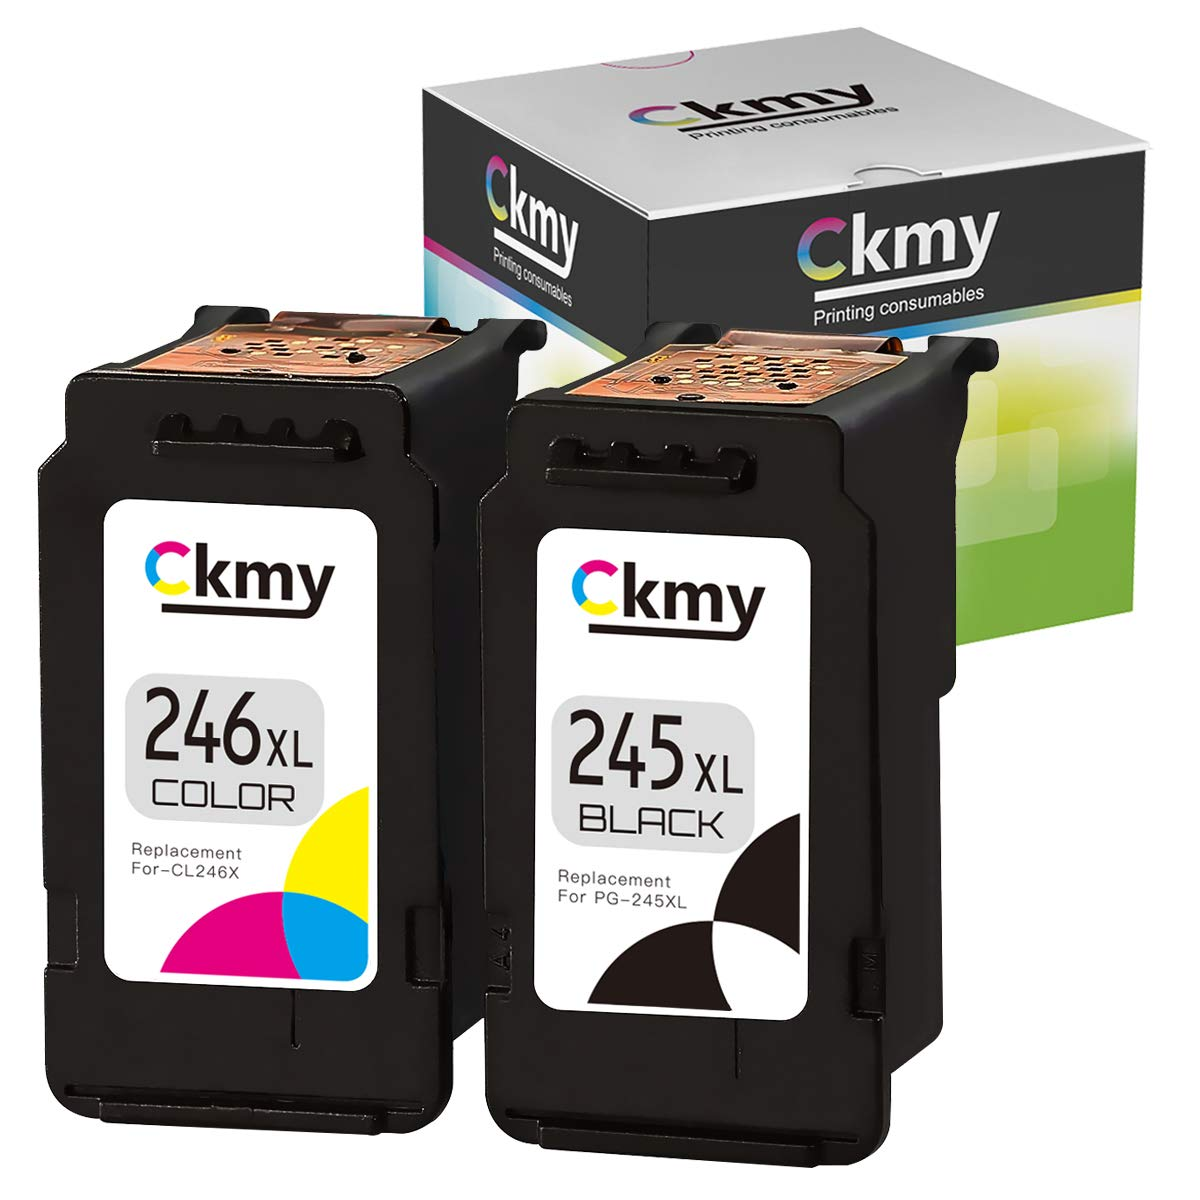 CKMY 245XL 246XL Remanufactured Ink Cartridge Replacement for Canon PG-245 CL-246 XL to Use with Pixma MG2520 TR4520 TS302 TS3120 TS202 MG2920 MG2922 MX492 MG2525 Printer (Black Tri-Color) 2-Pack